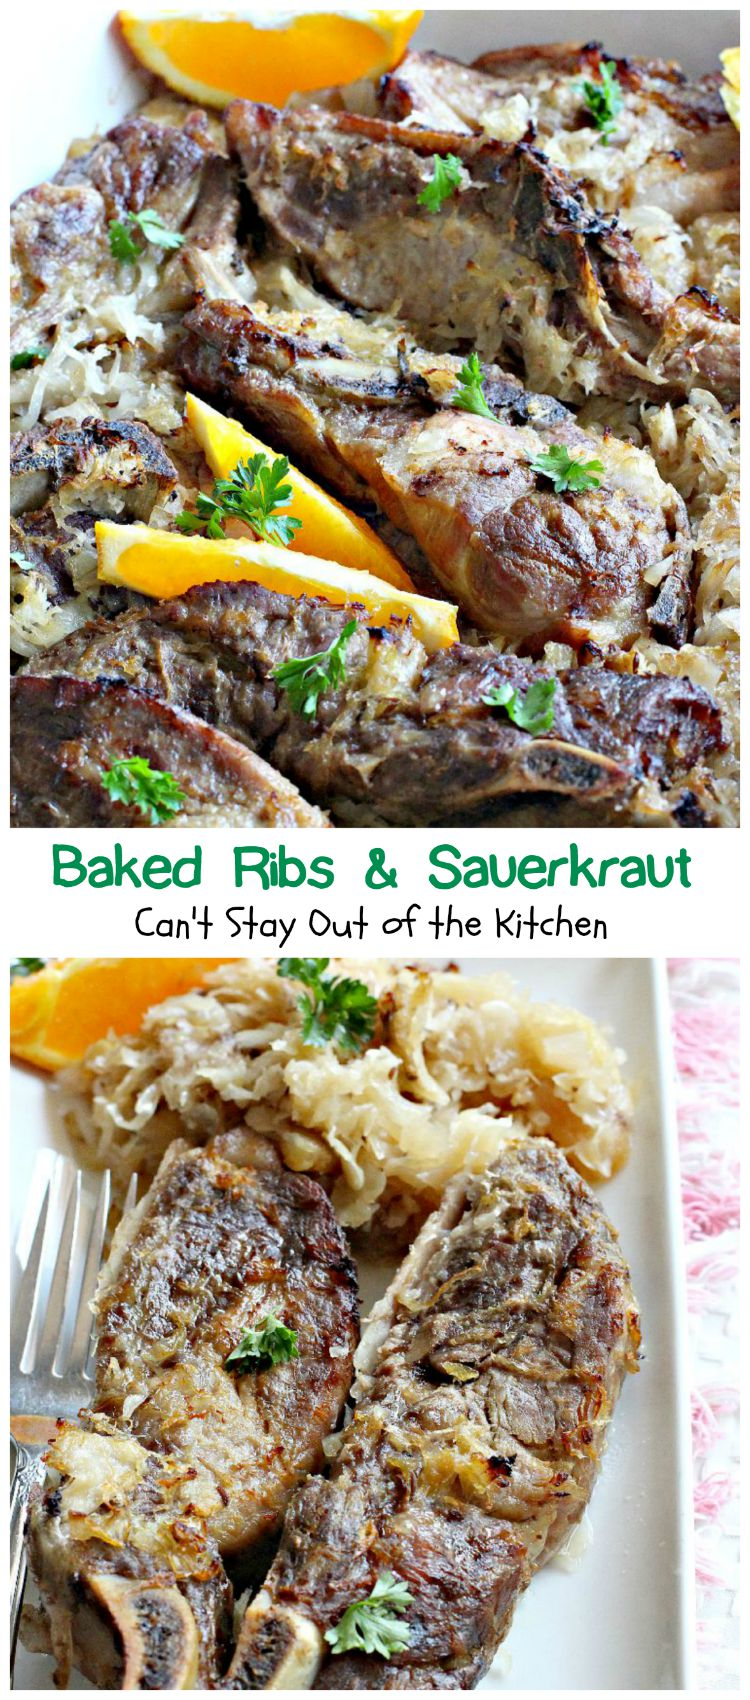 Pork Roast with Sauerkraut - Can't Stay Out of the Kitchen